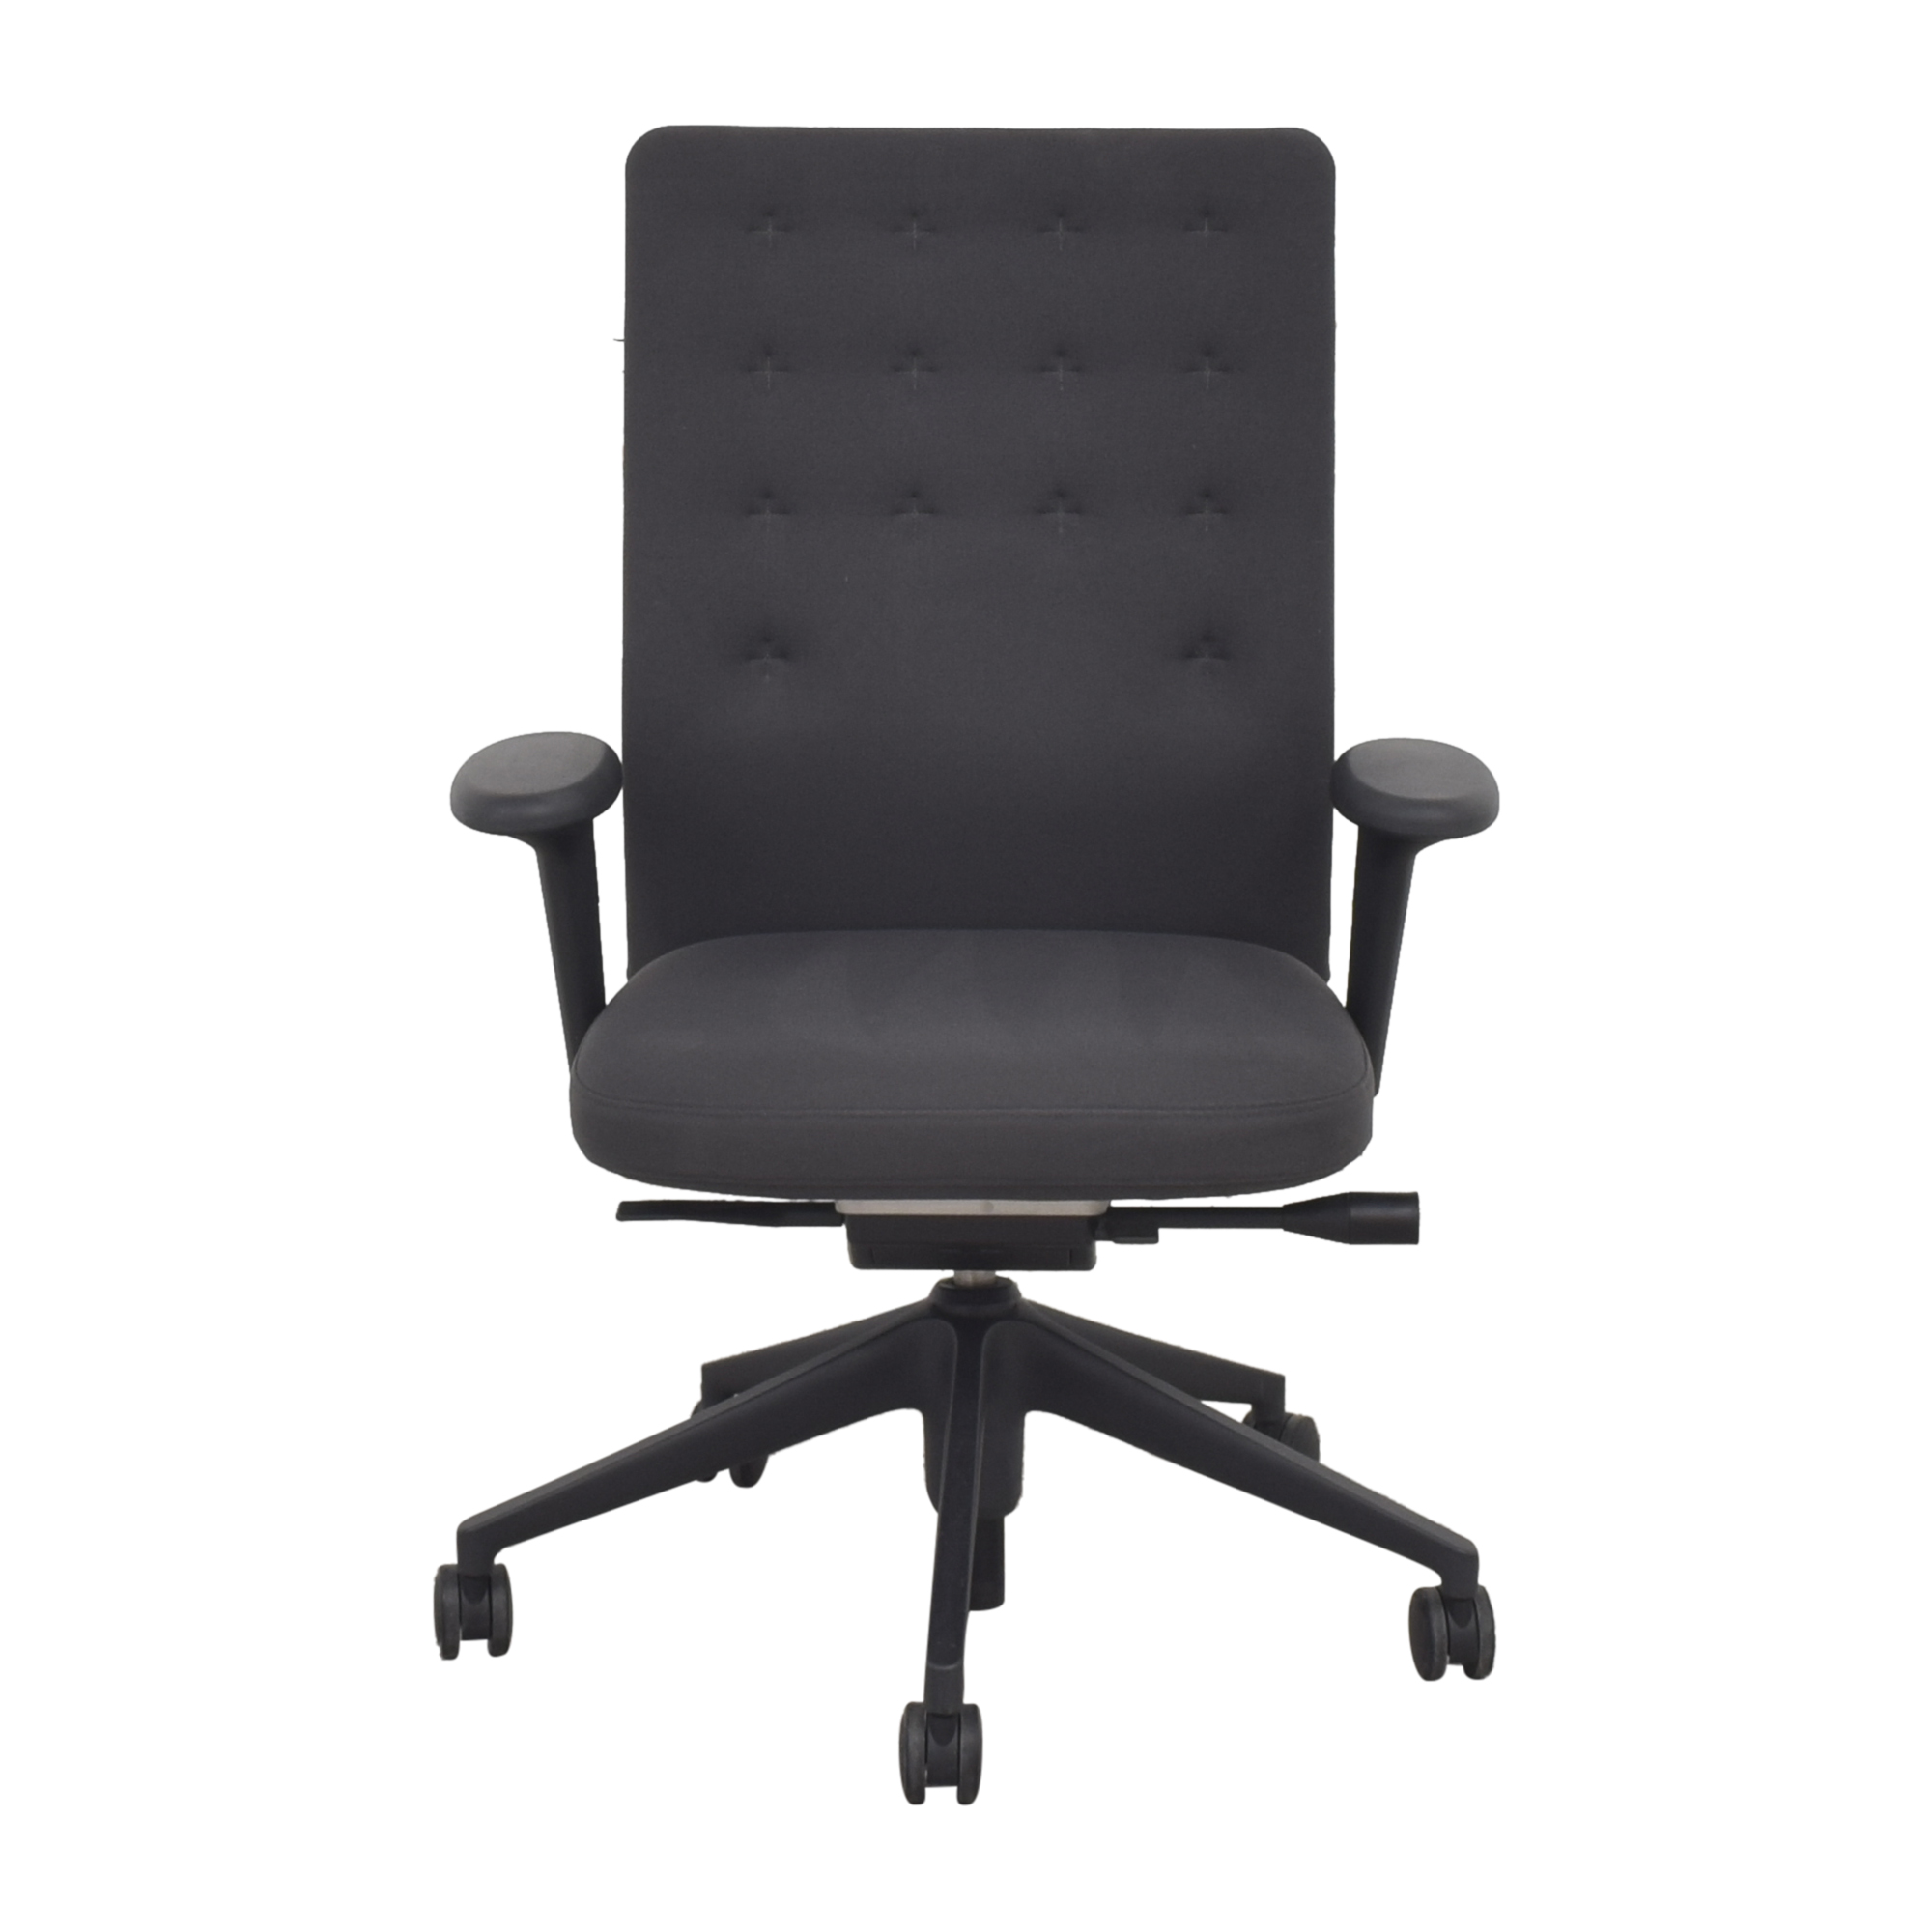 Vitra Vitra ID Trim Office Chair dark gray